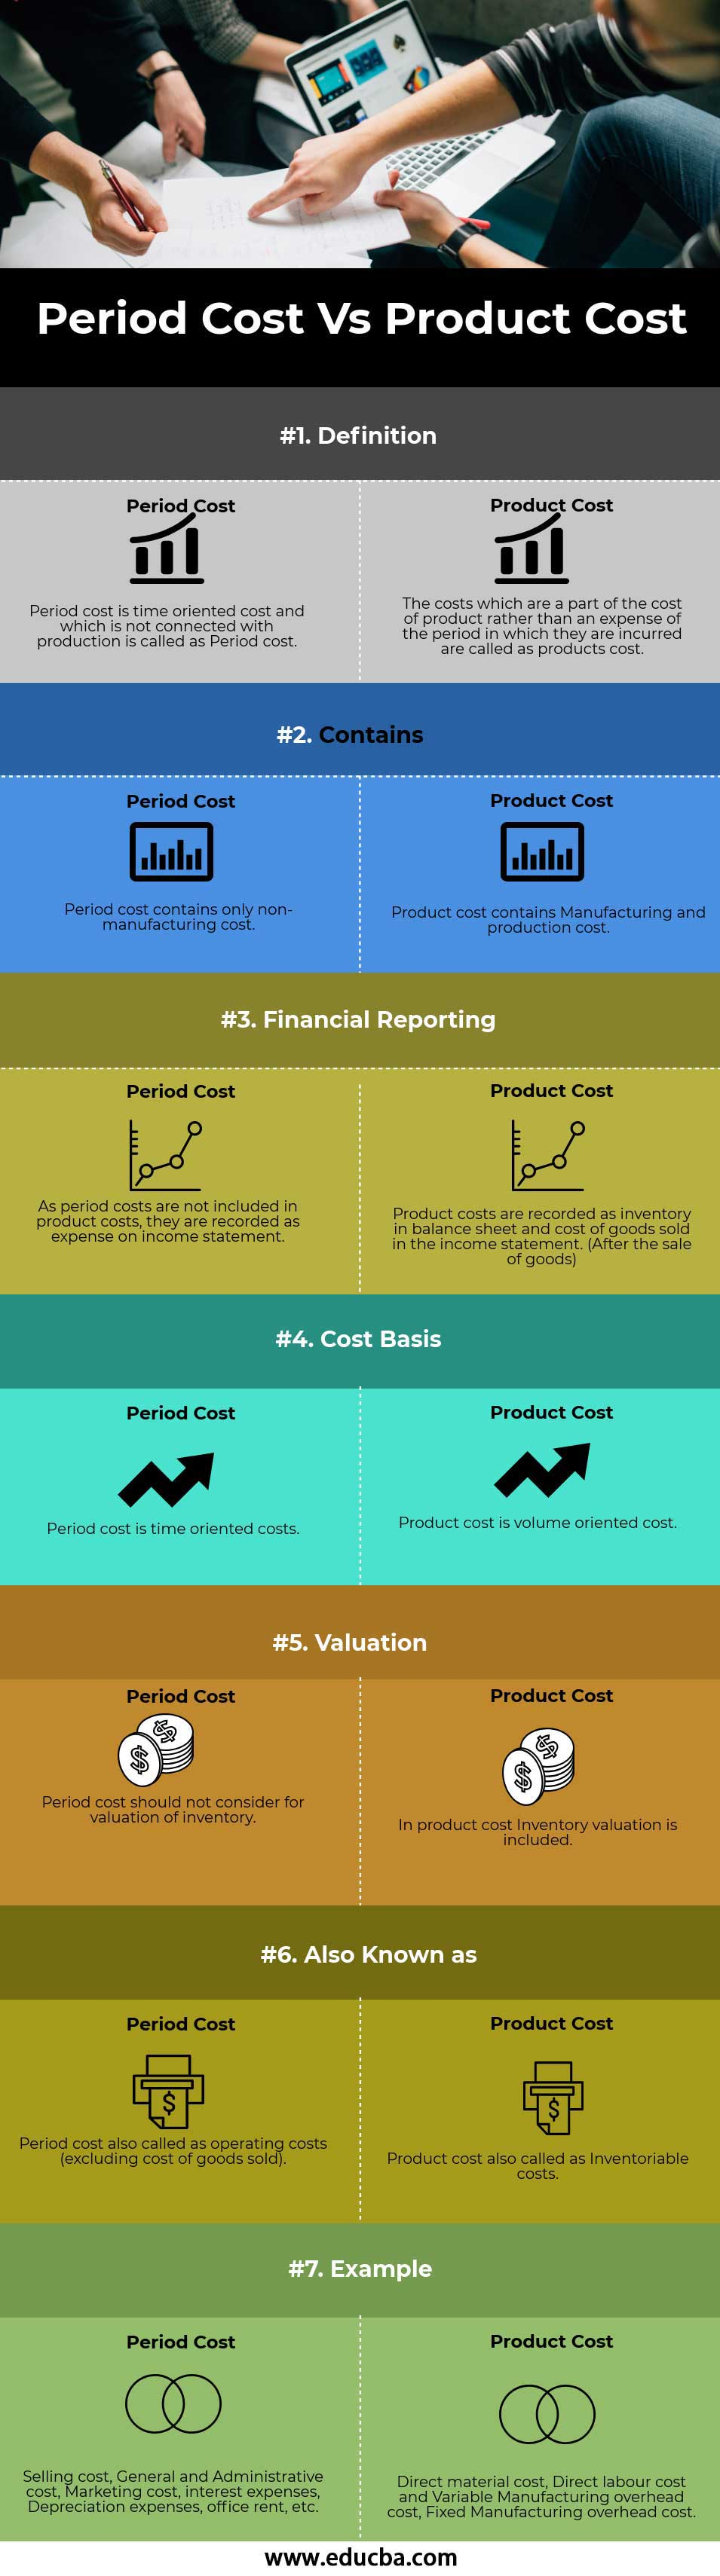 Period Cost Vs Product Cost info